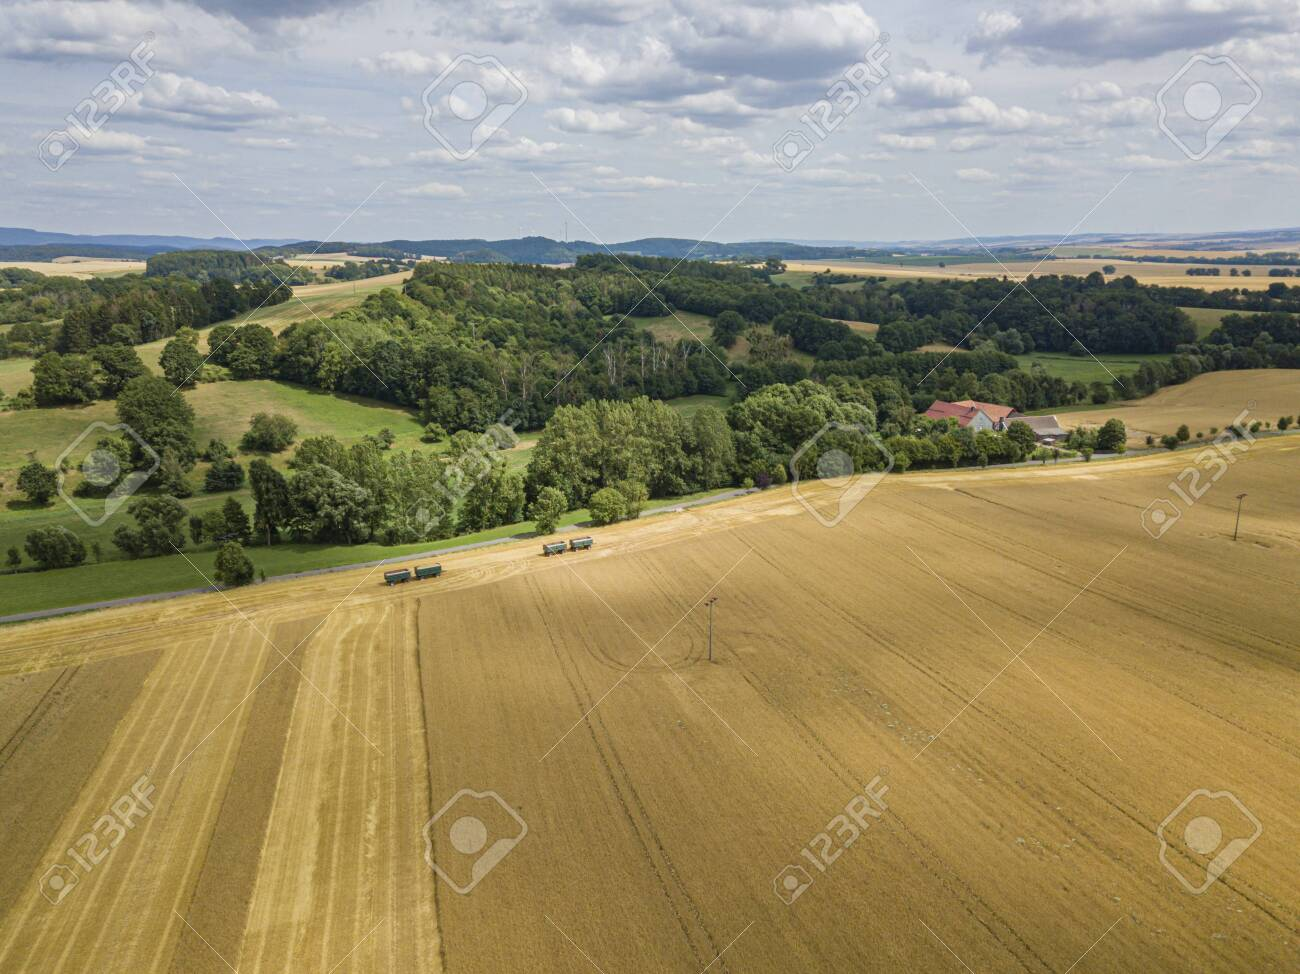 Aerial view of a crops field with forest and hills in the back - 132455737